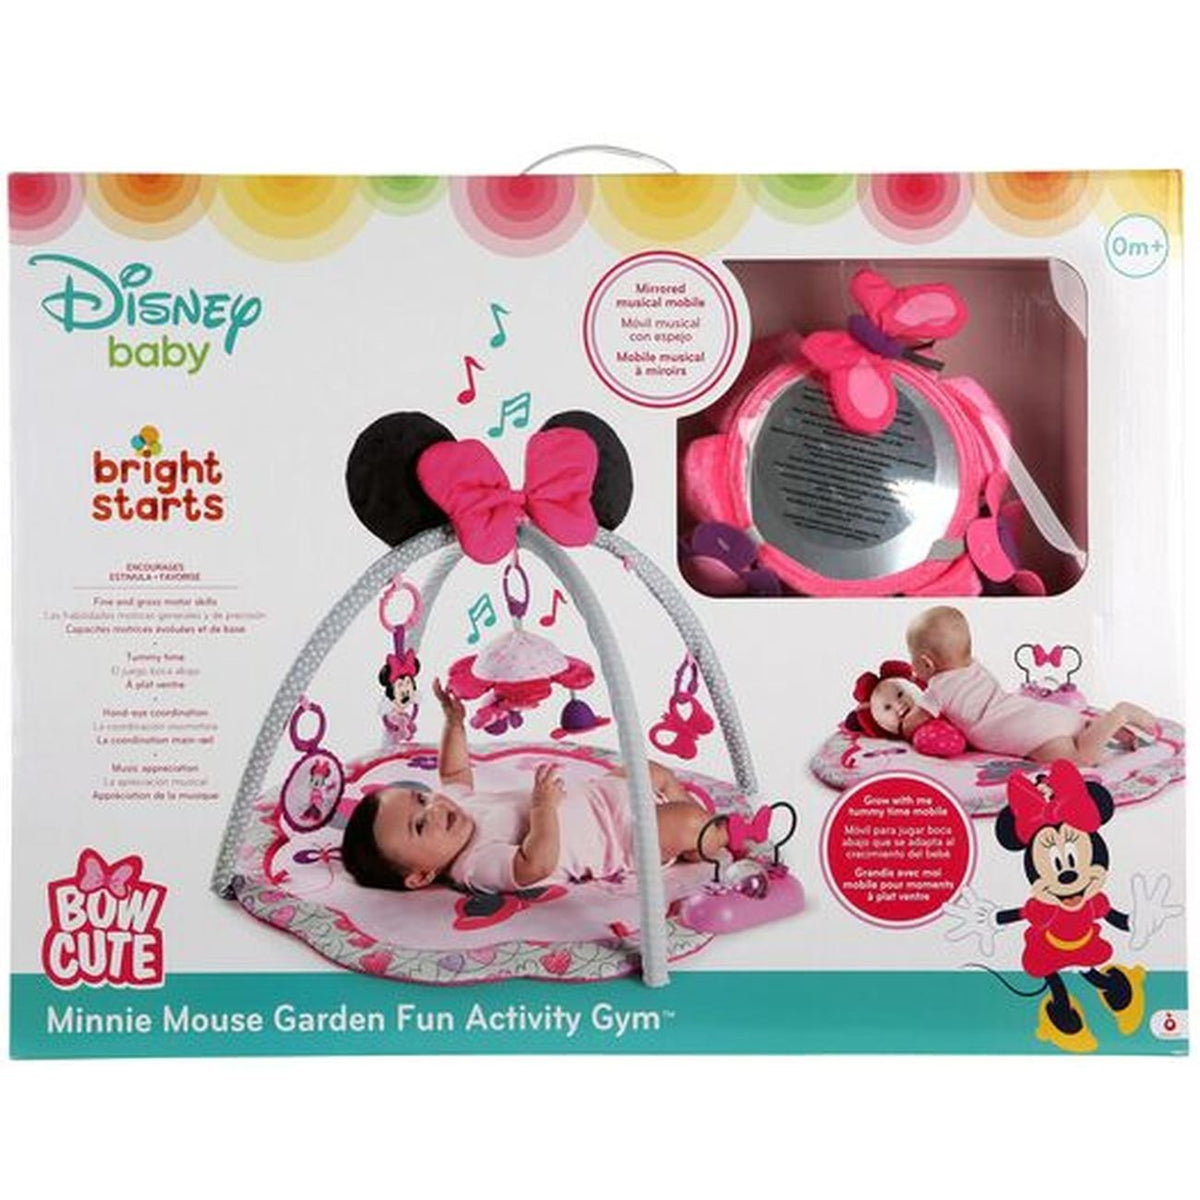 BRIGHT STARTS MINNIE MOUSE ACTIVITY GYM